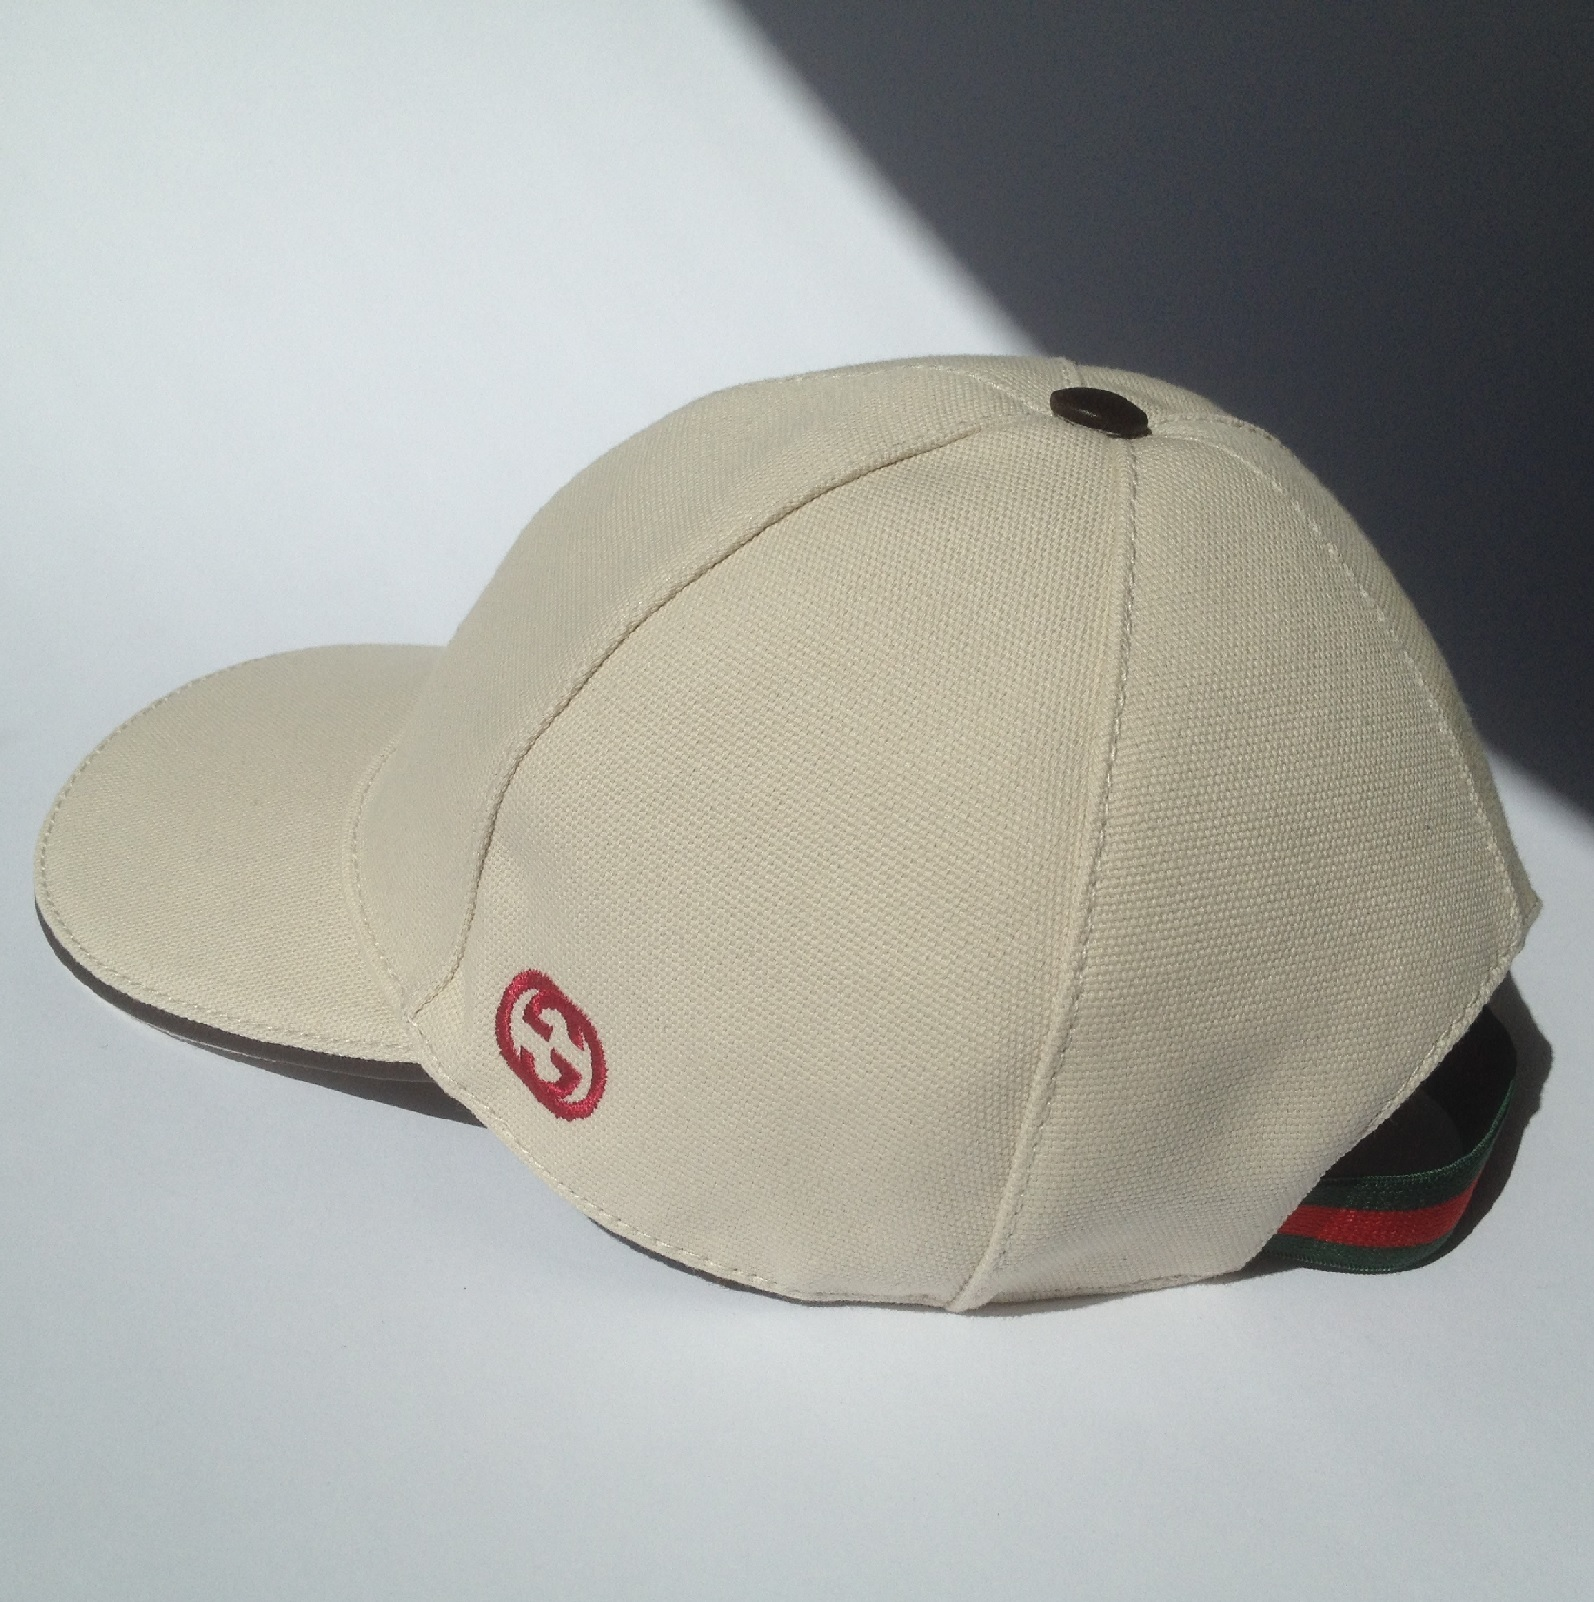 Gucci - GG SUPREME BASEBALL HAT - hats & caps ... |White Gucci Hat